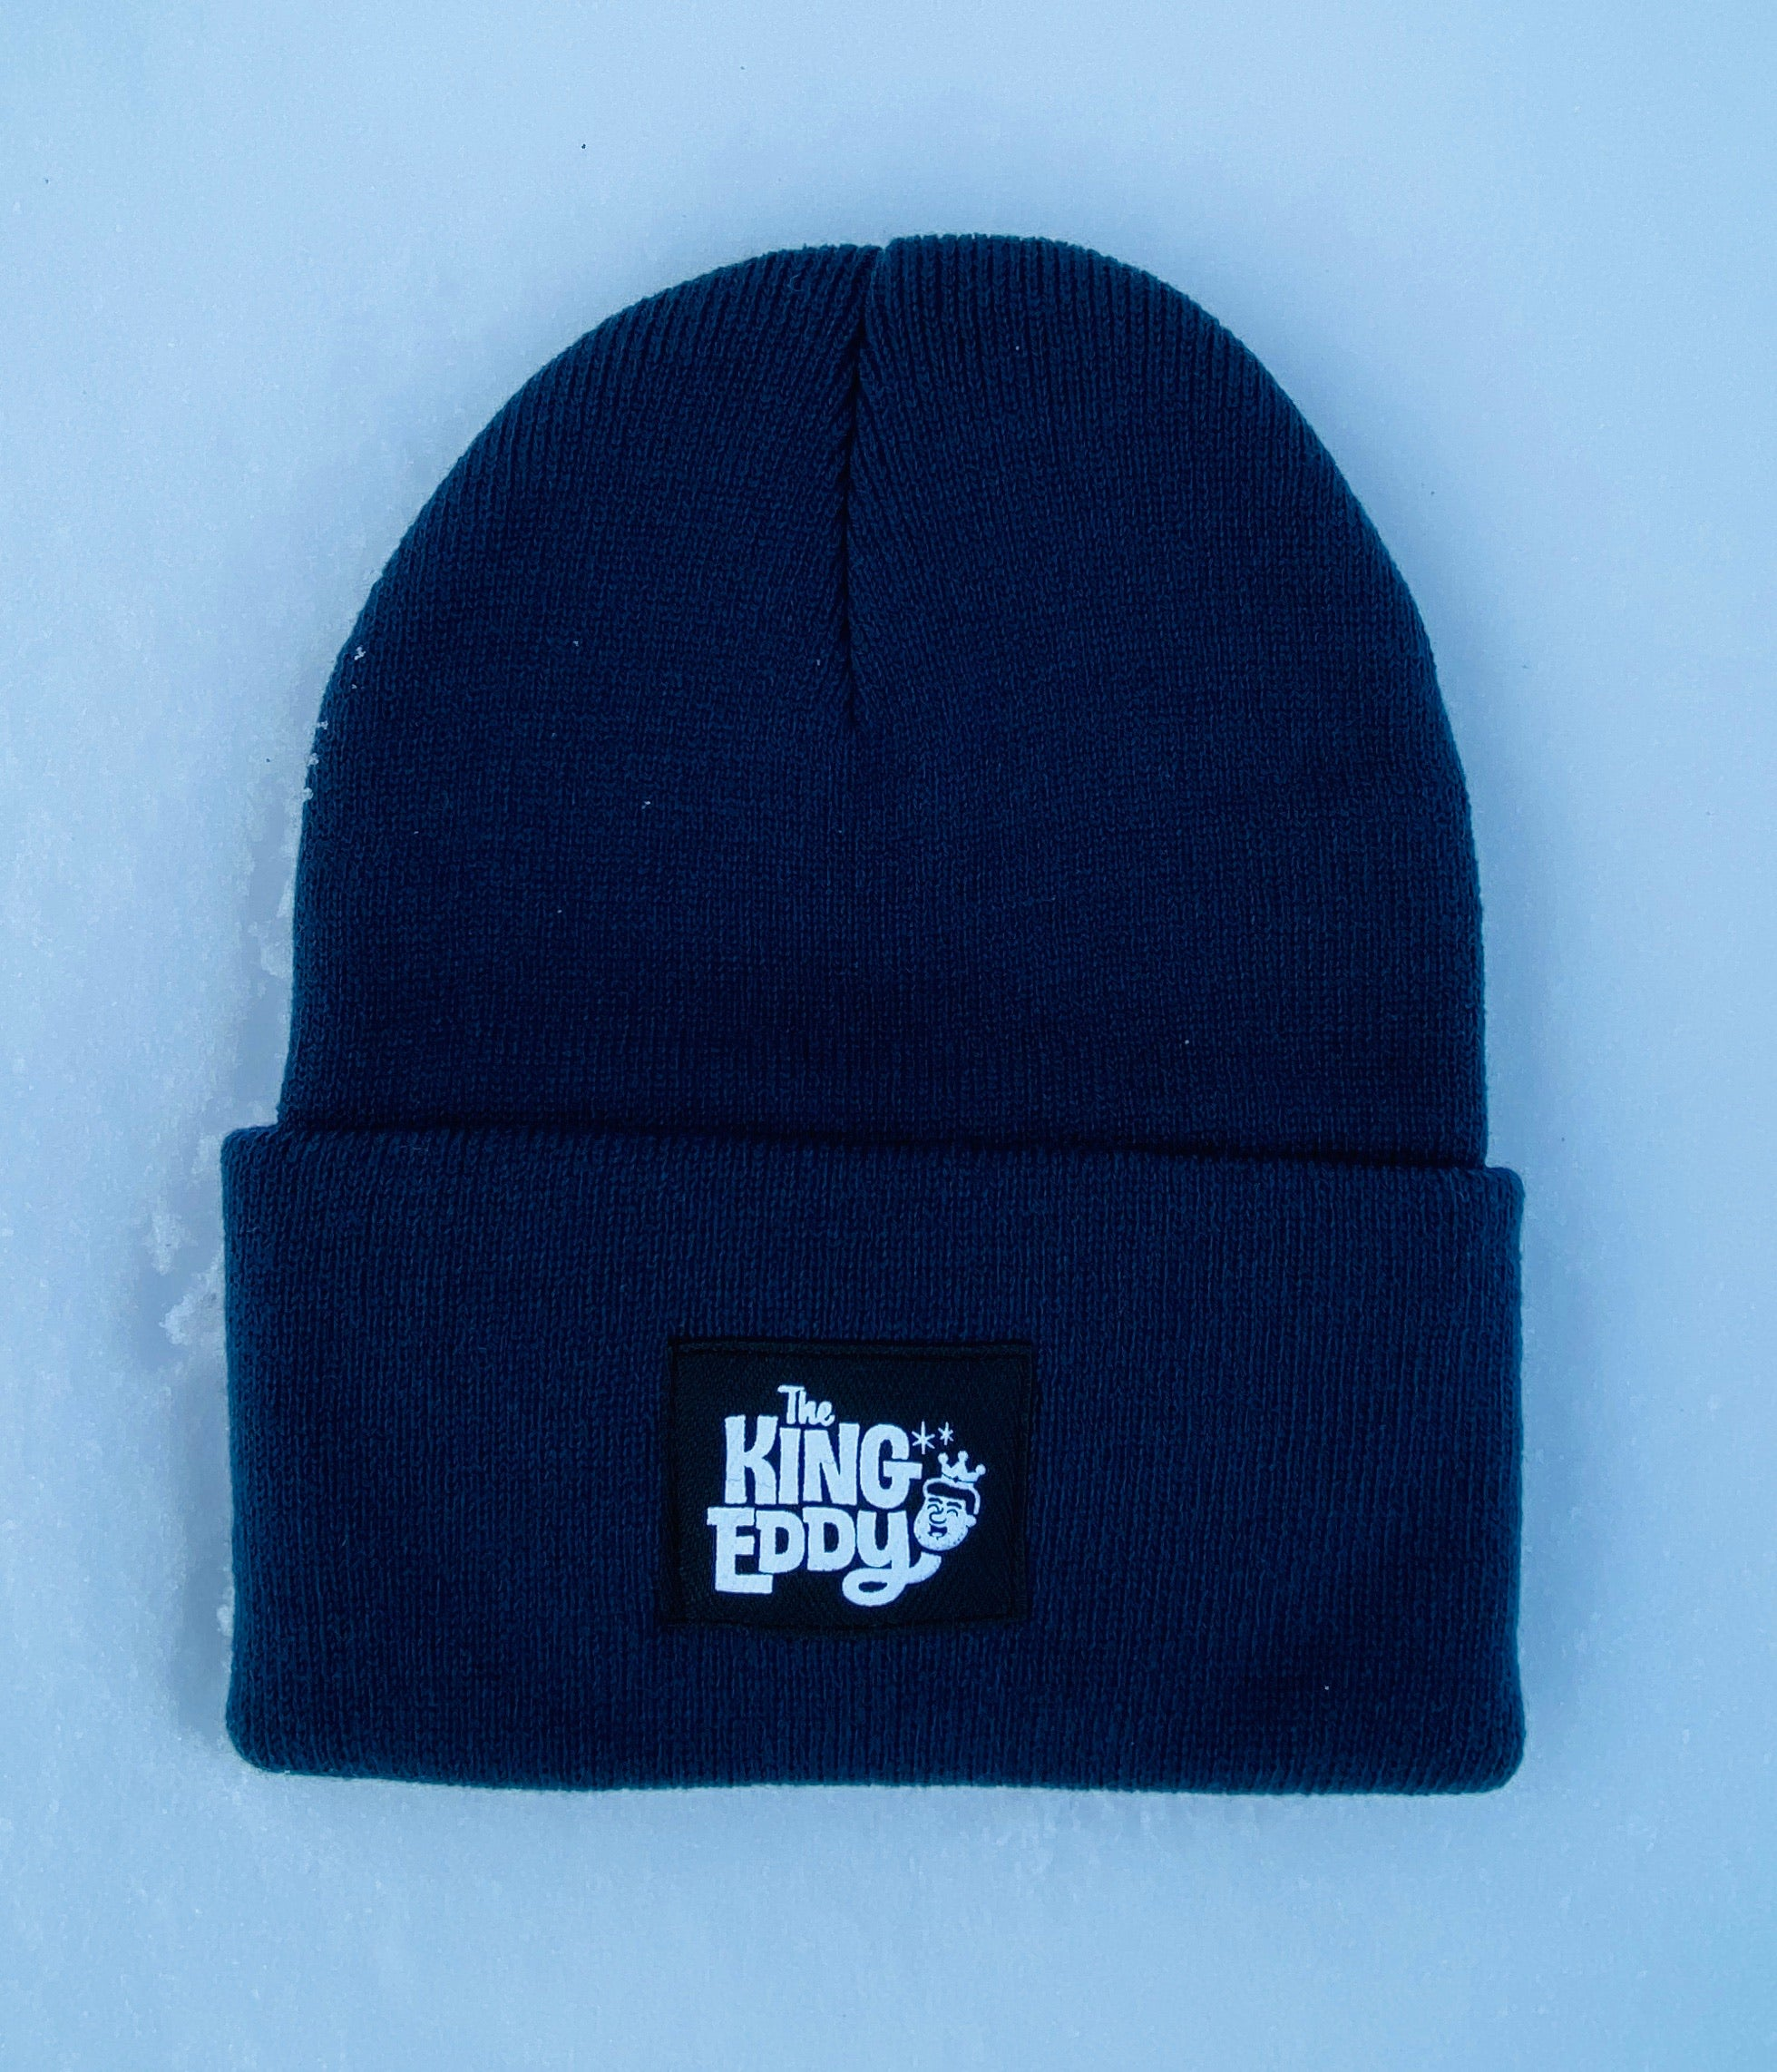 The King Eddy Knit Toque